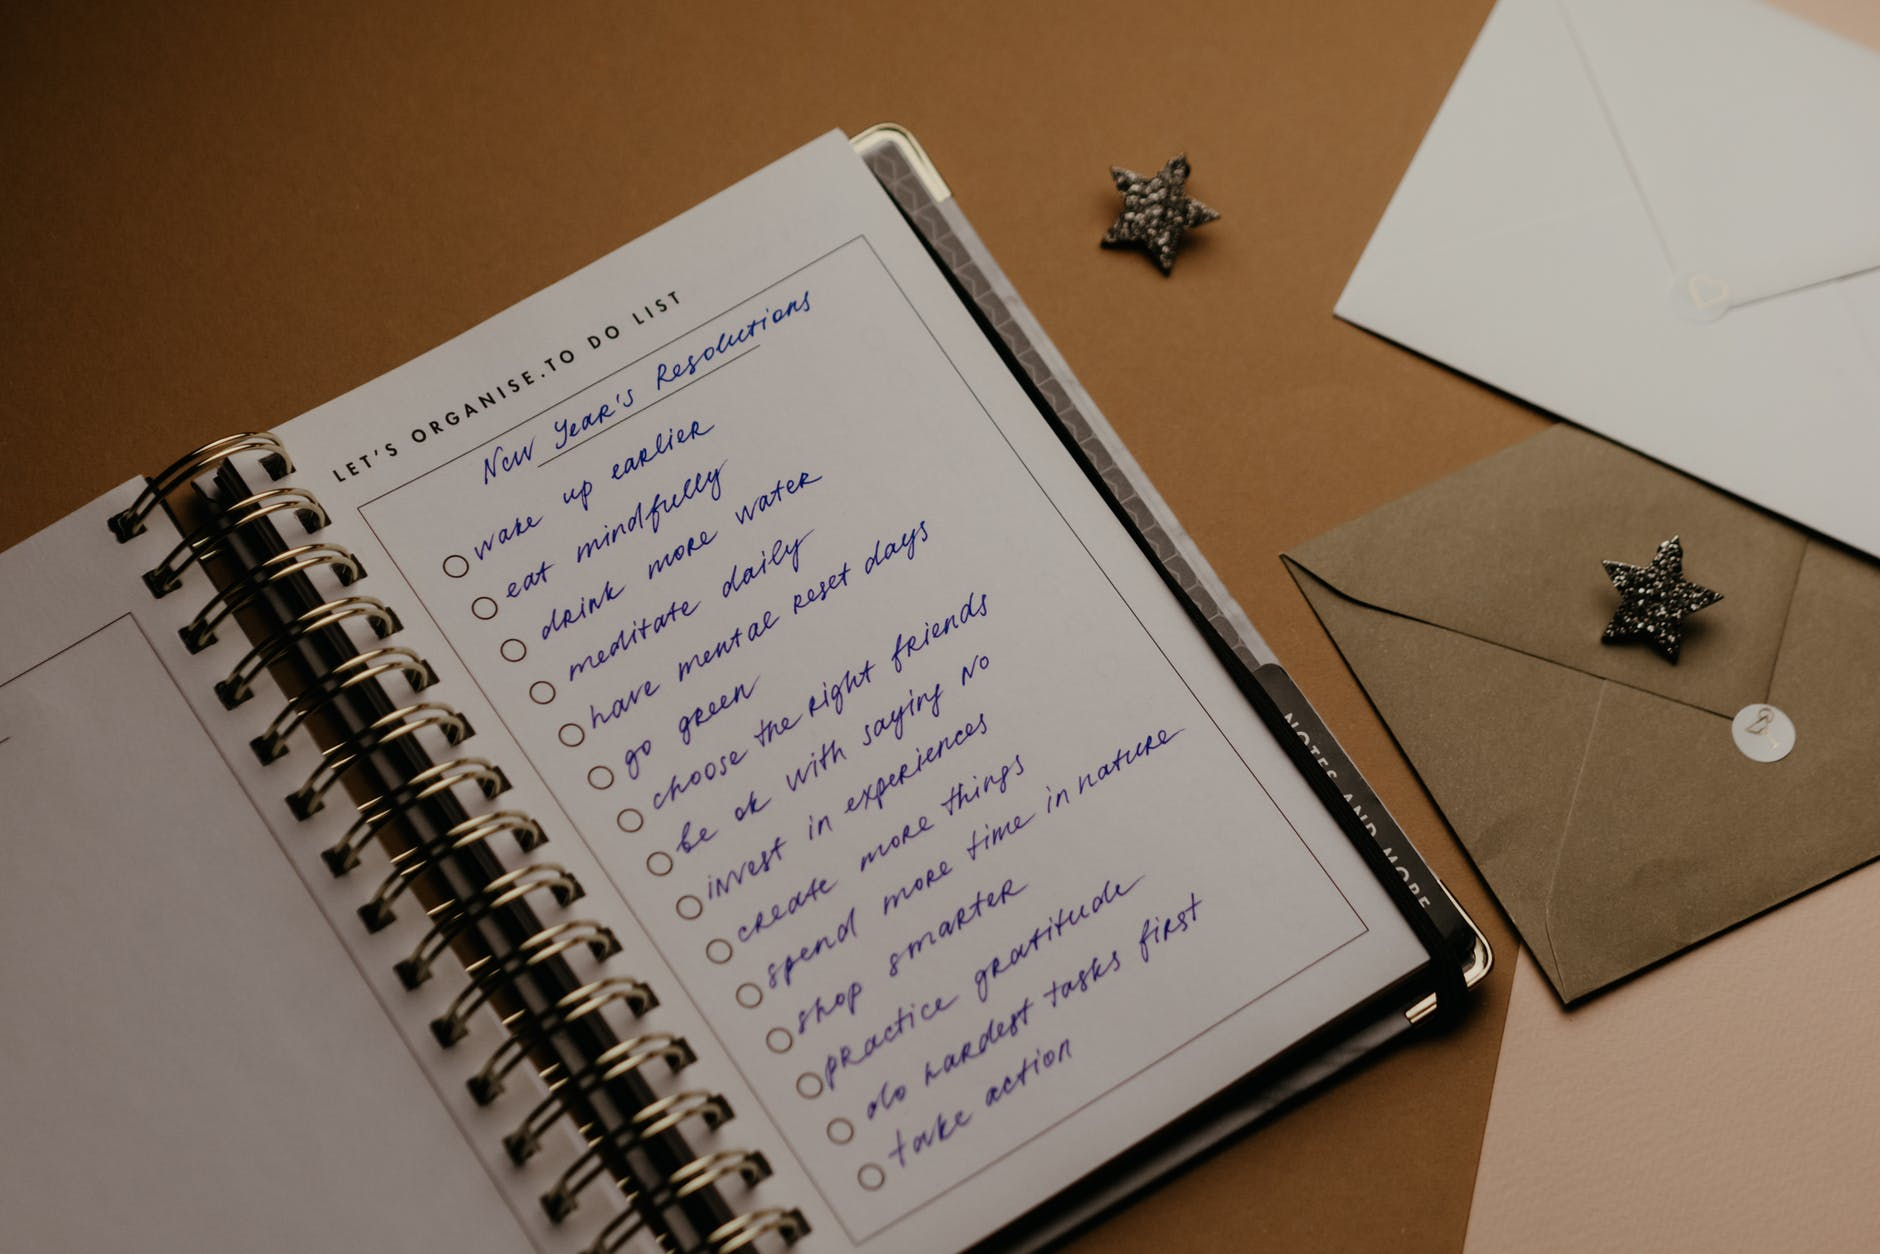 List of New Year resolutions written in a notebook